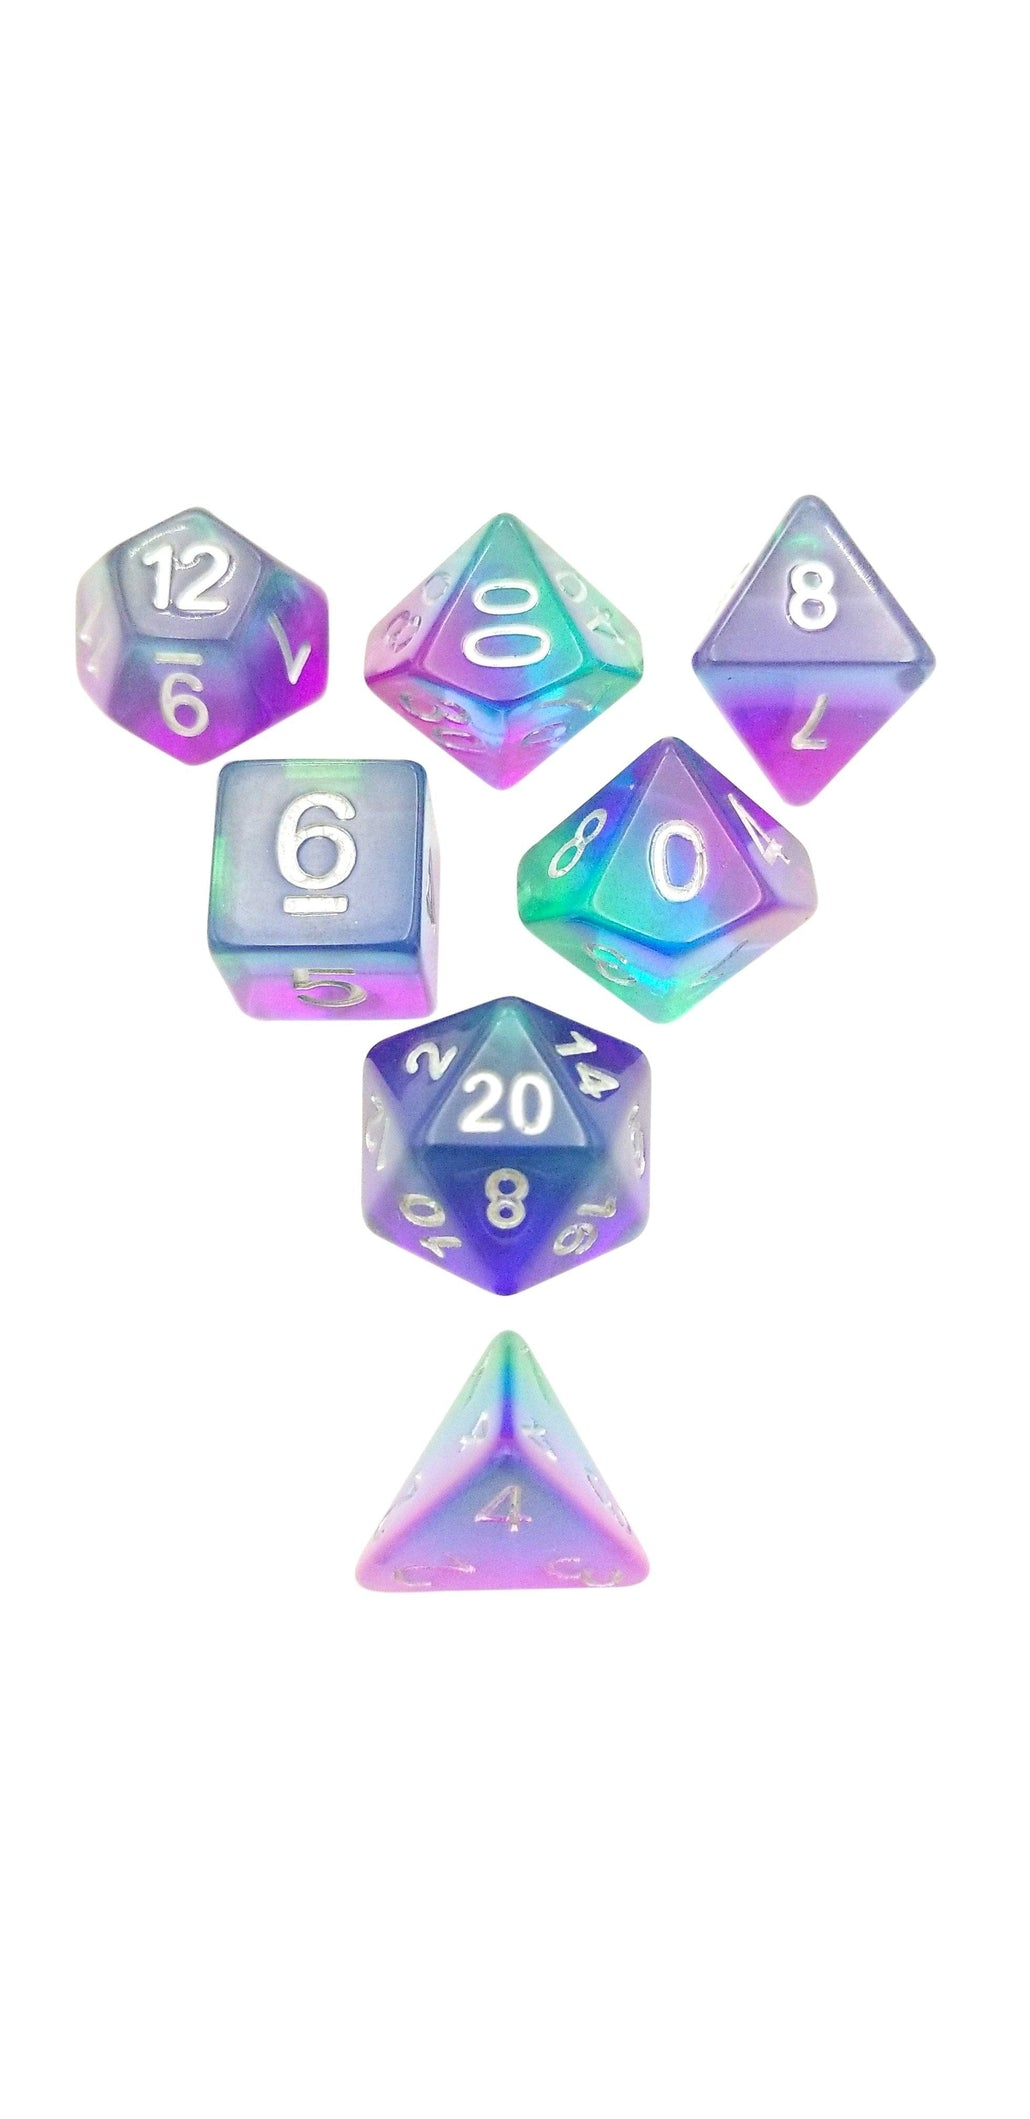 Prismatic Doom- Translucent Swirled Set of 7 Polyhedral RPG Dice for D&D